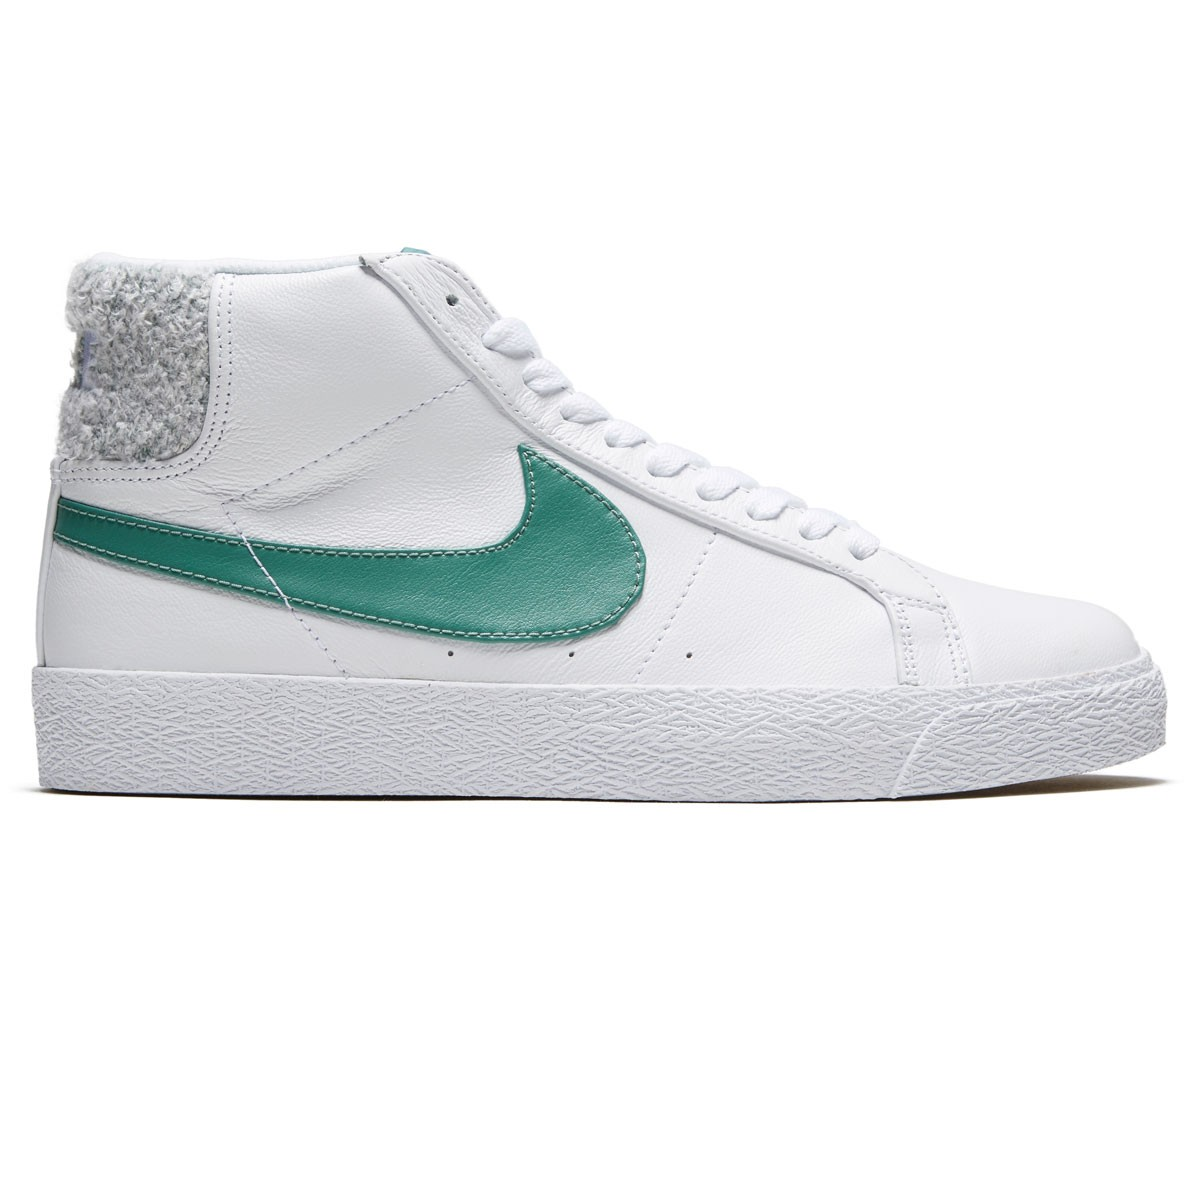 low priced 1e159 415d1 Nike SB Zoom Blazer Mid Prm Shoes